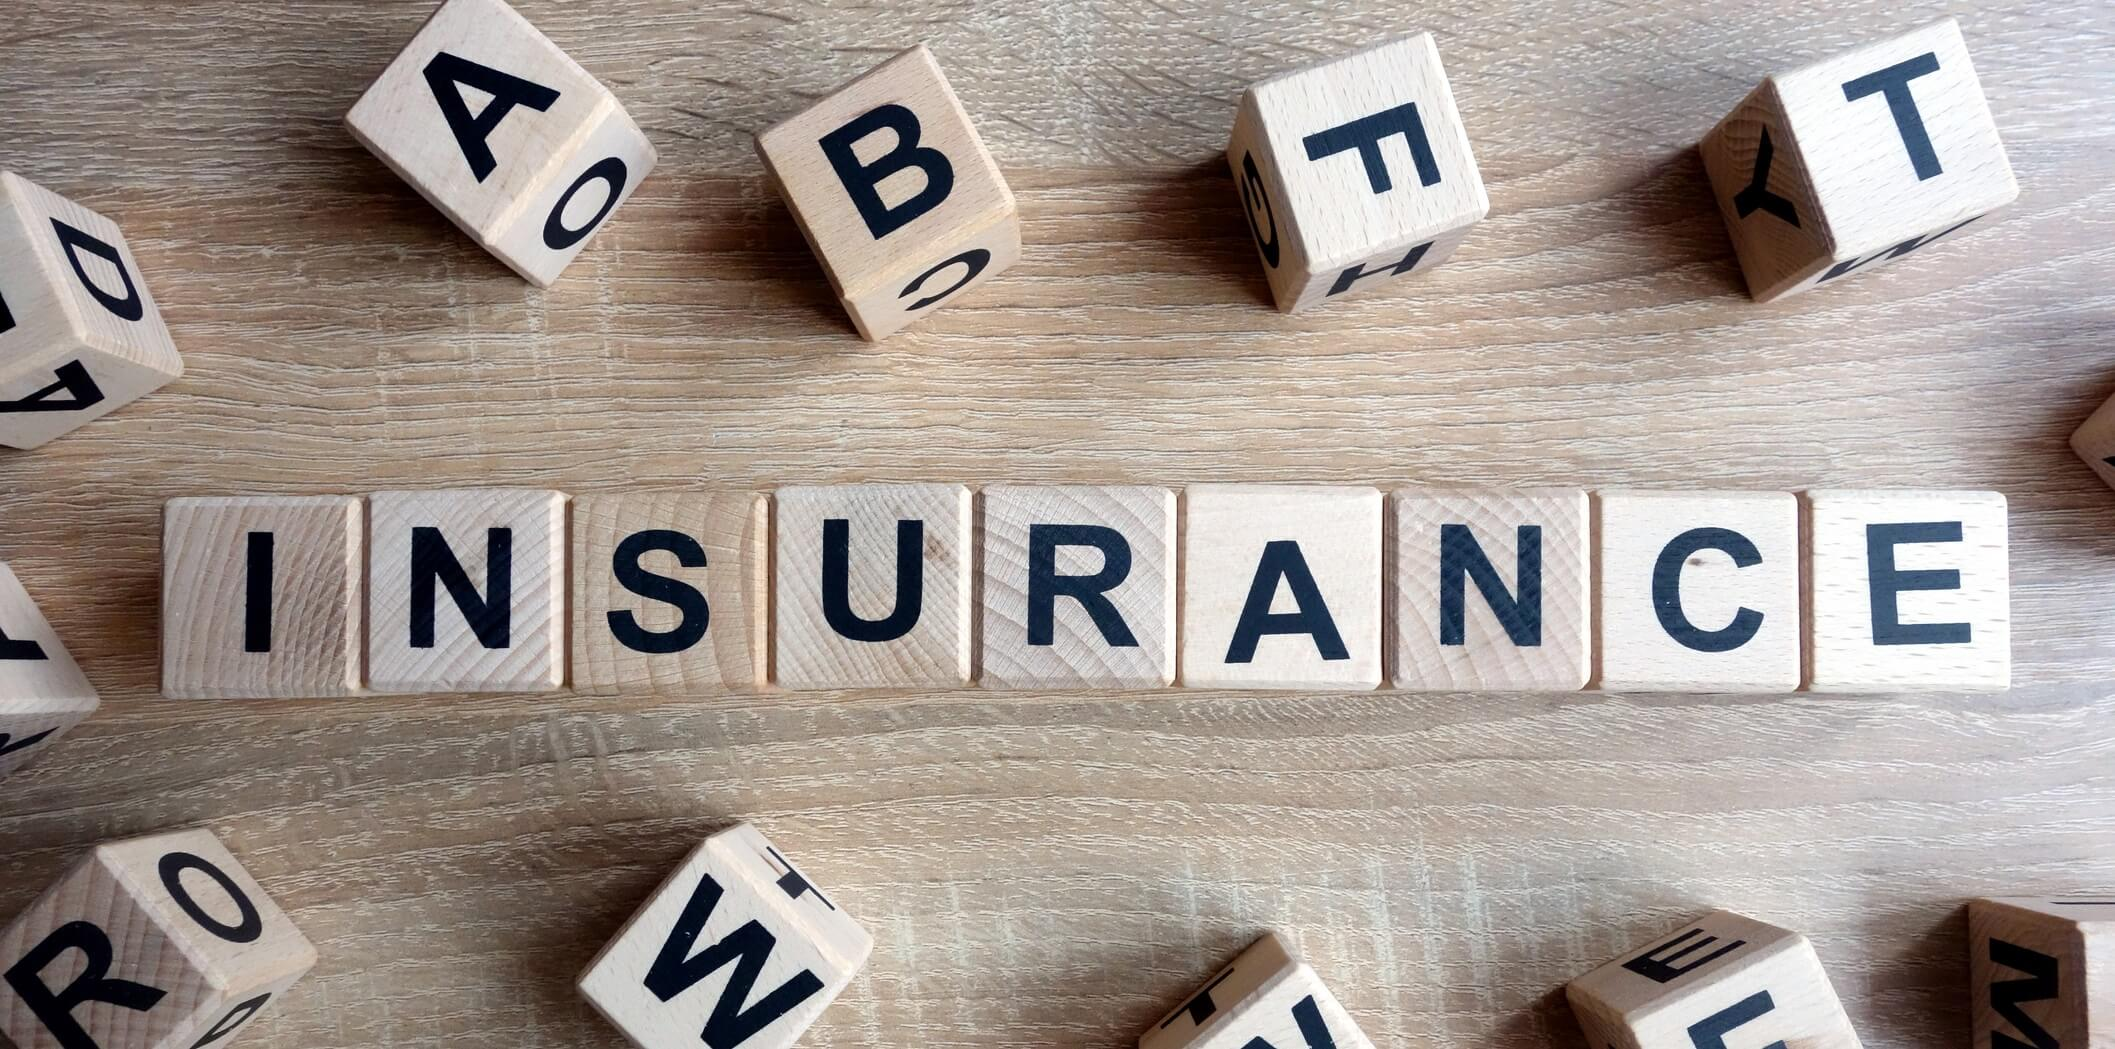 Insurance word from wooden blocks